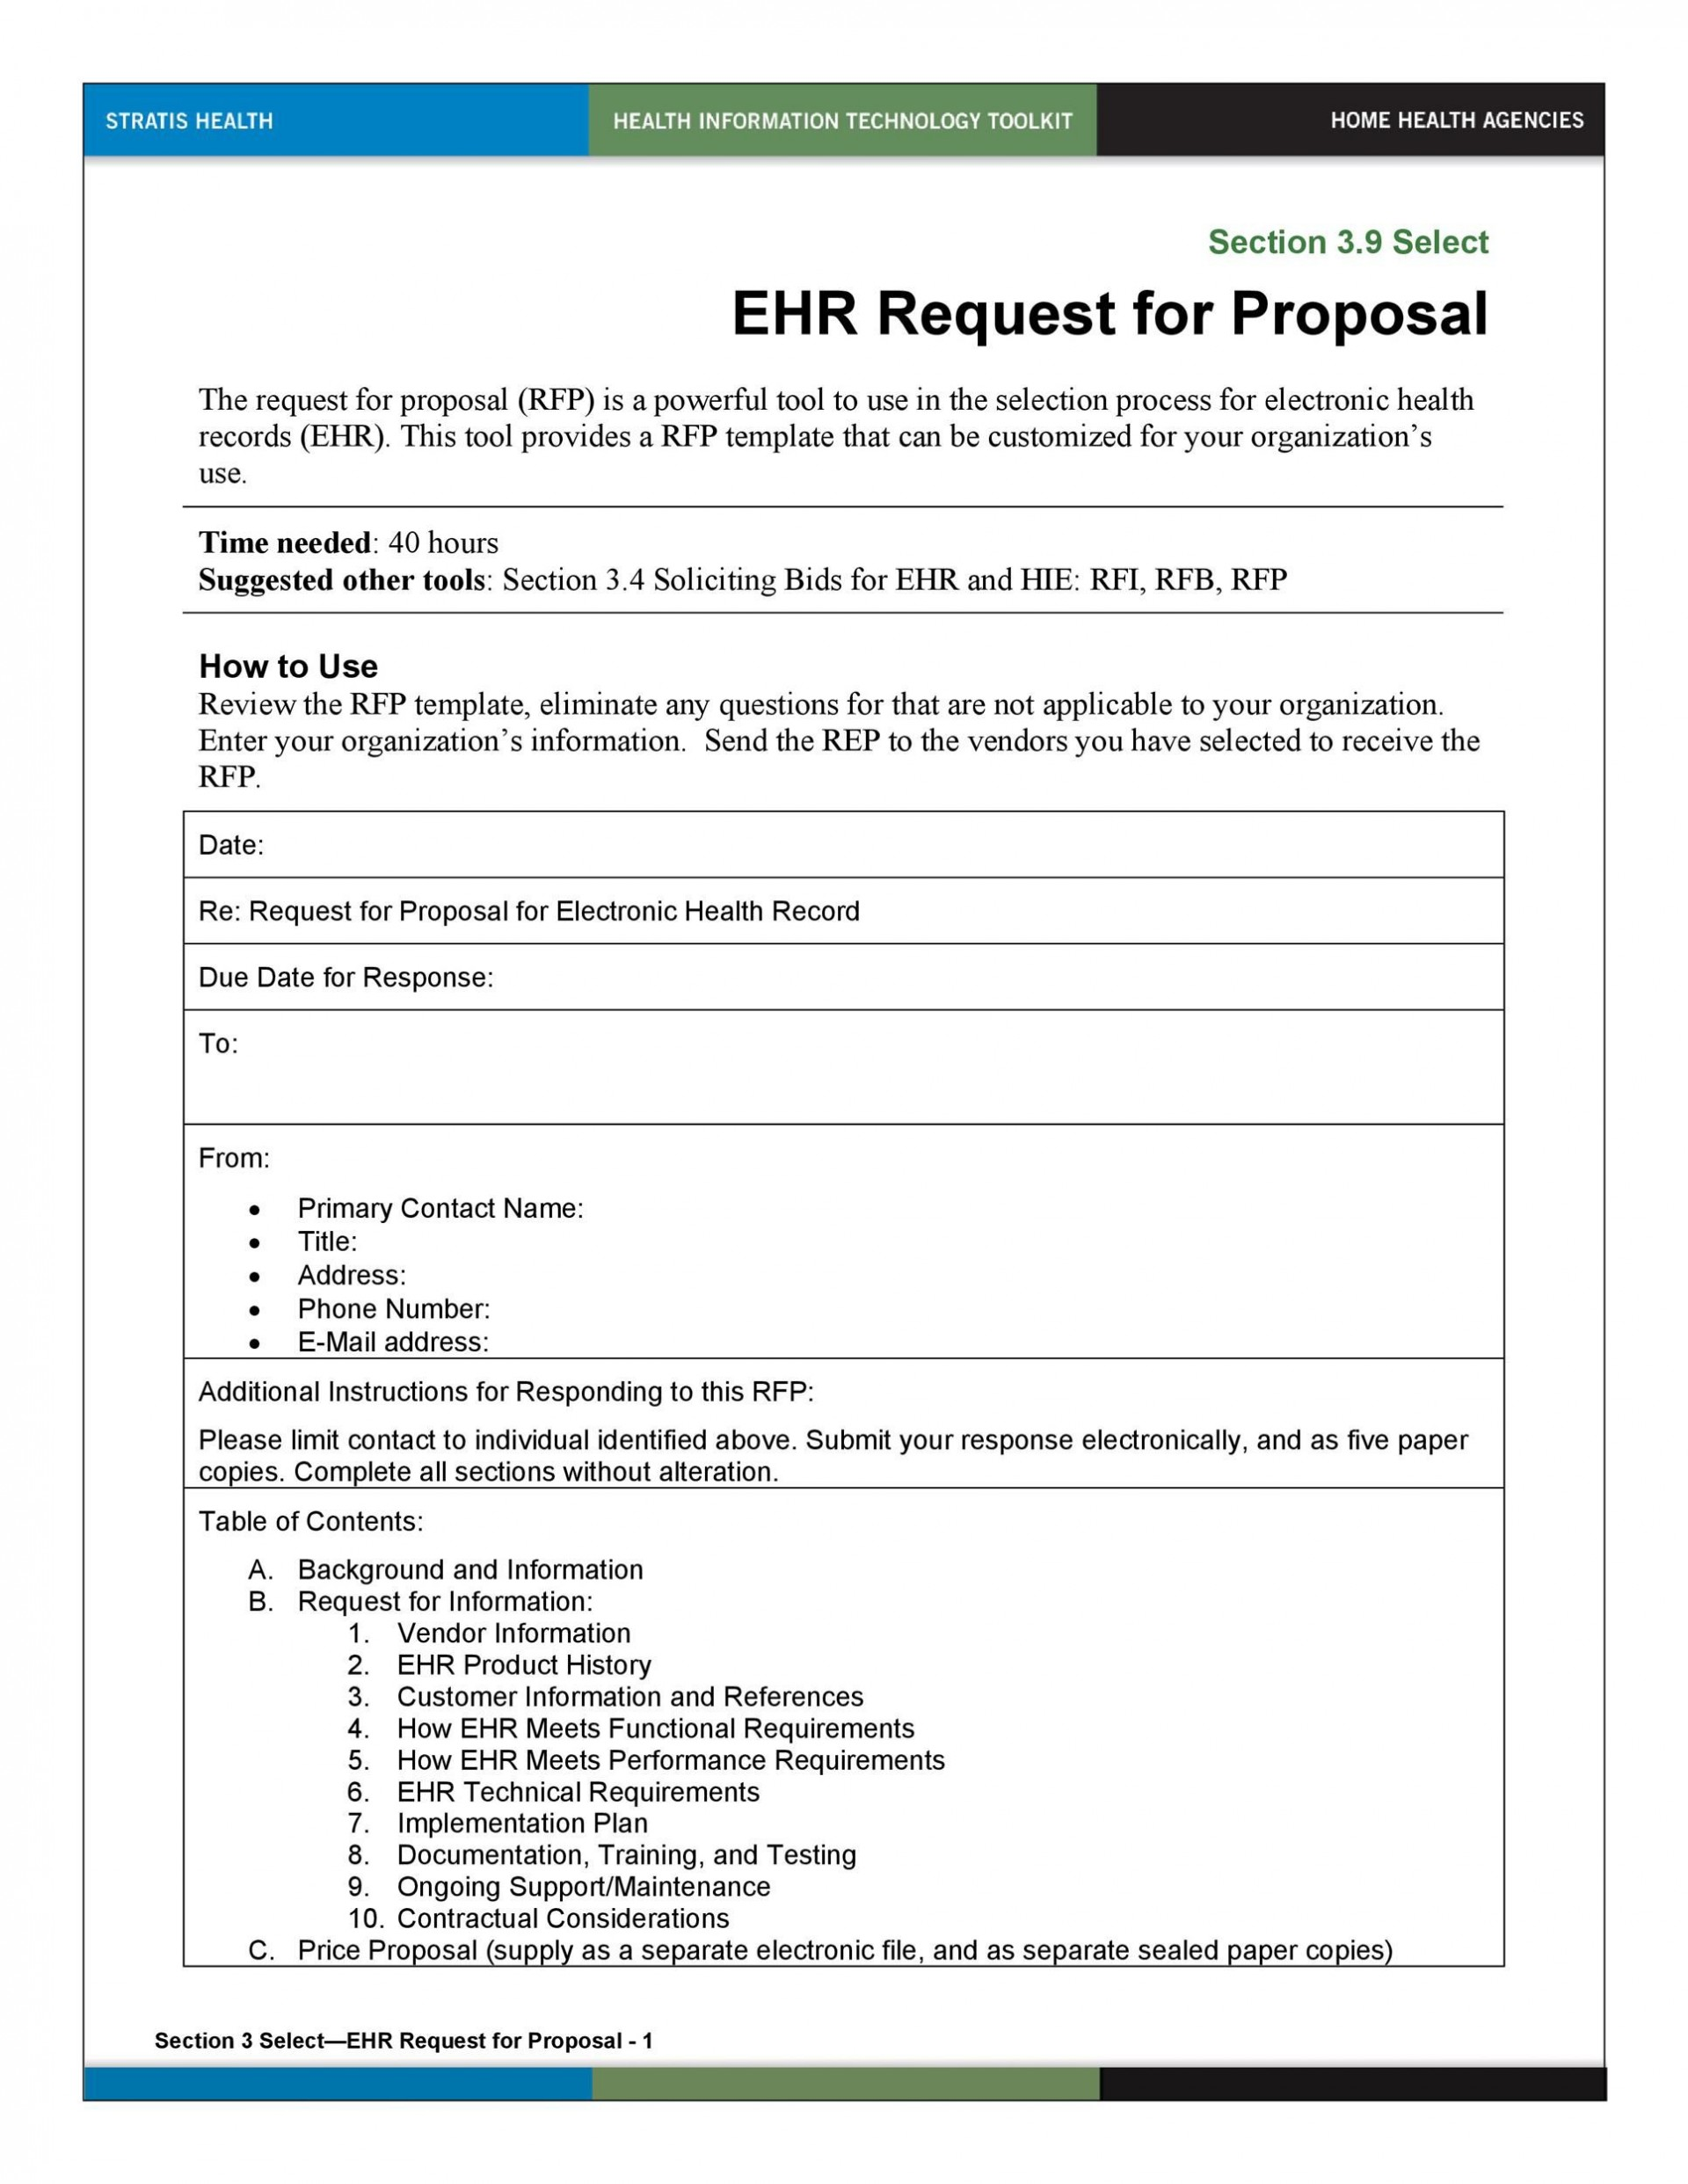 003 Awesome Request For Proposal Response Template Free Photo 1920